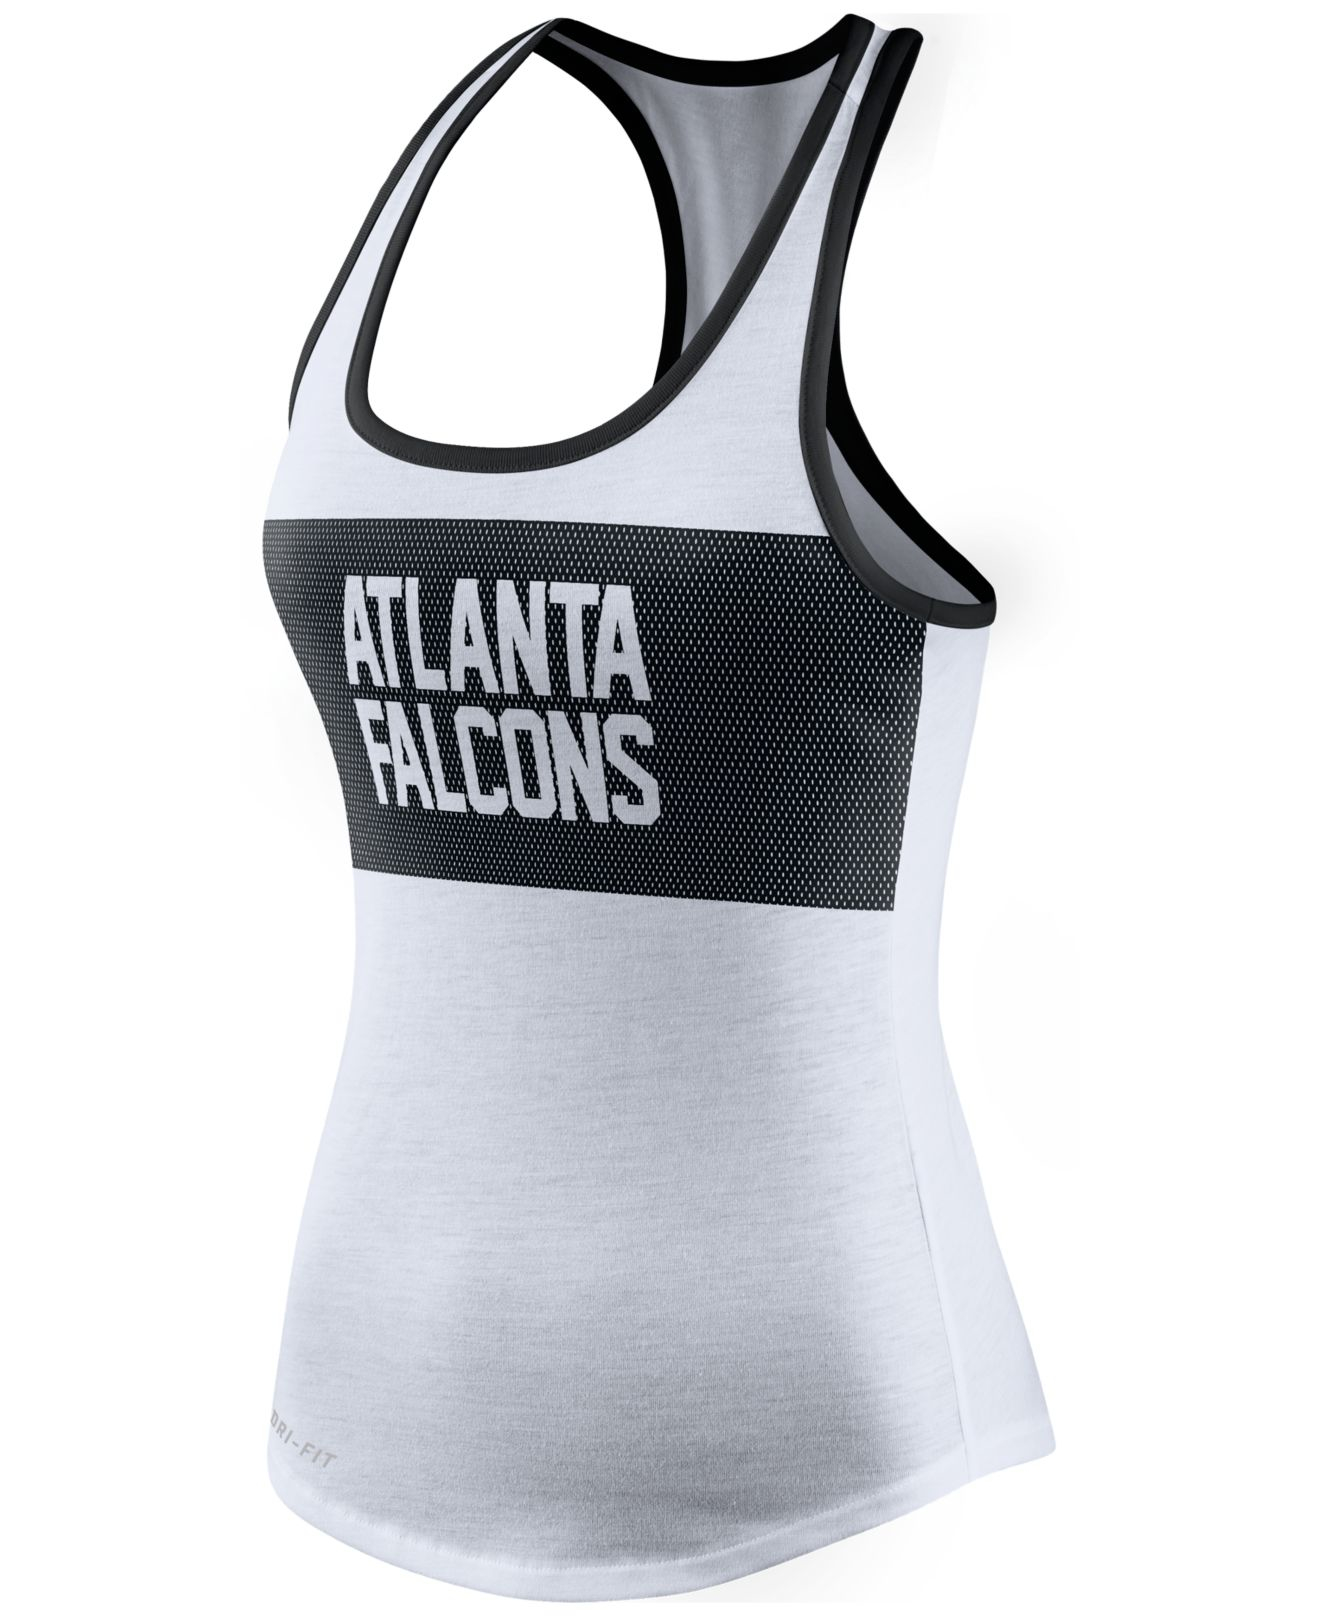 05cf6b8c Lyst - Nike Women's Atlanta Falcons Dri-fit Performance Tank Top in ...